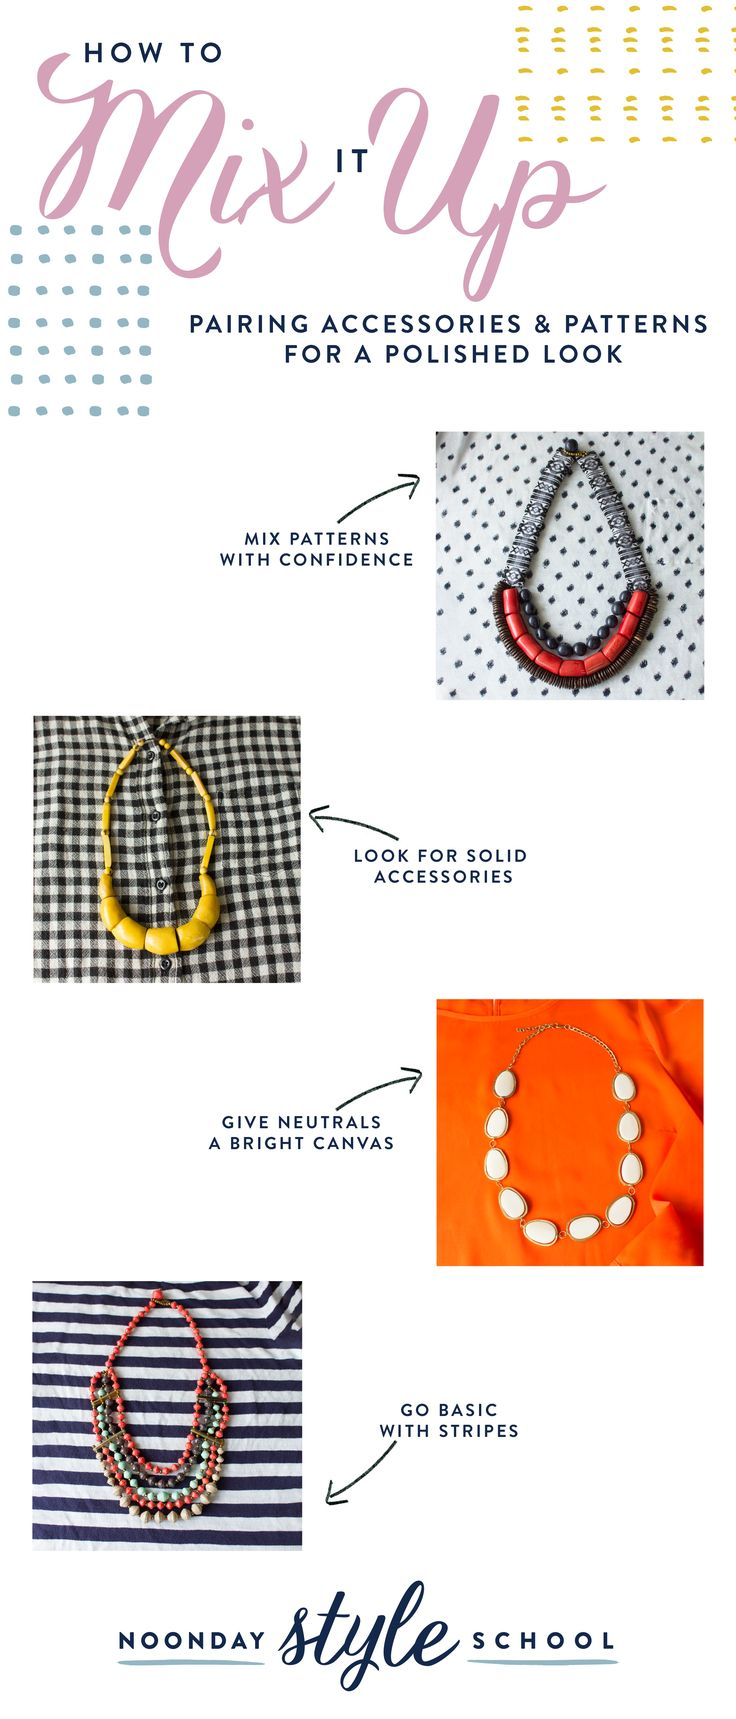 Are you ready for a wardrobe challenge? Learn how to wear bold statement necklaces with patterns. From stripes to polka dots, learn these stylists' secrets for pairing jewelry with prints.